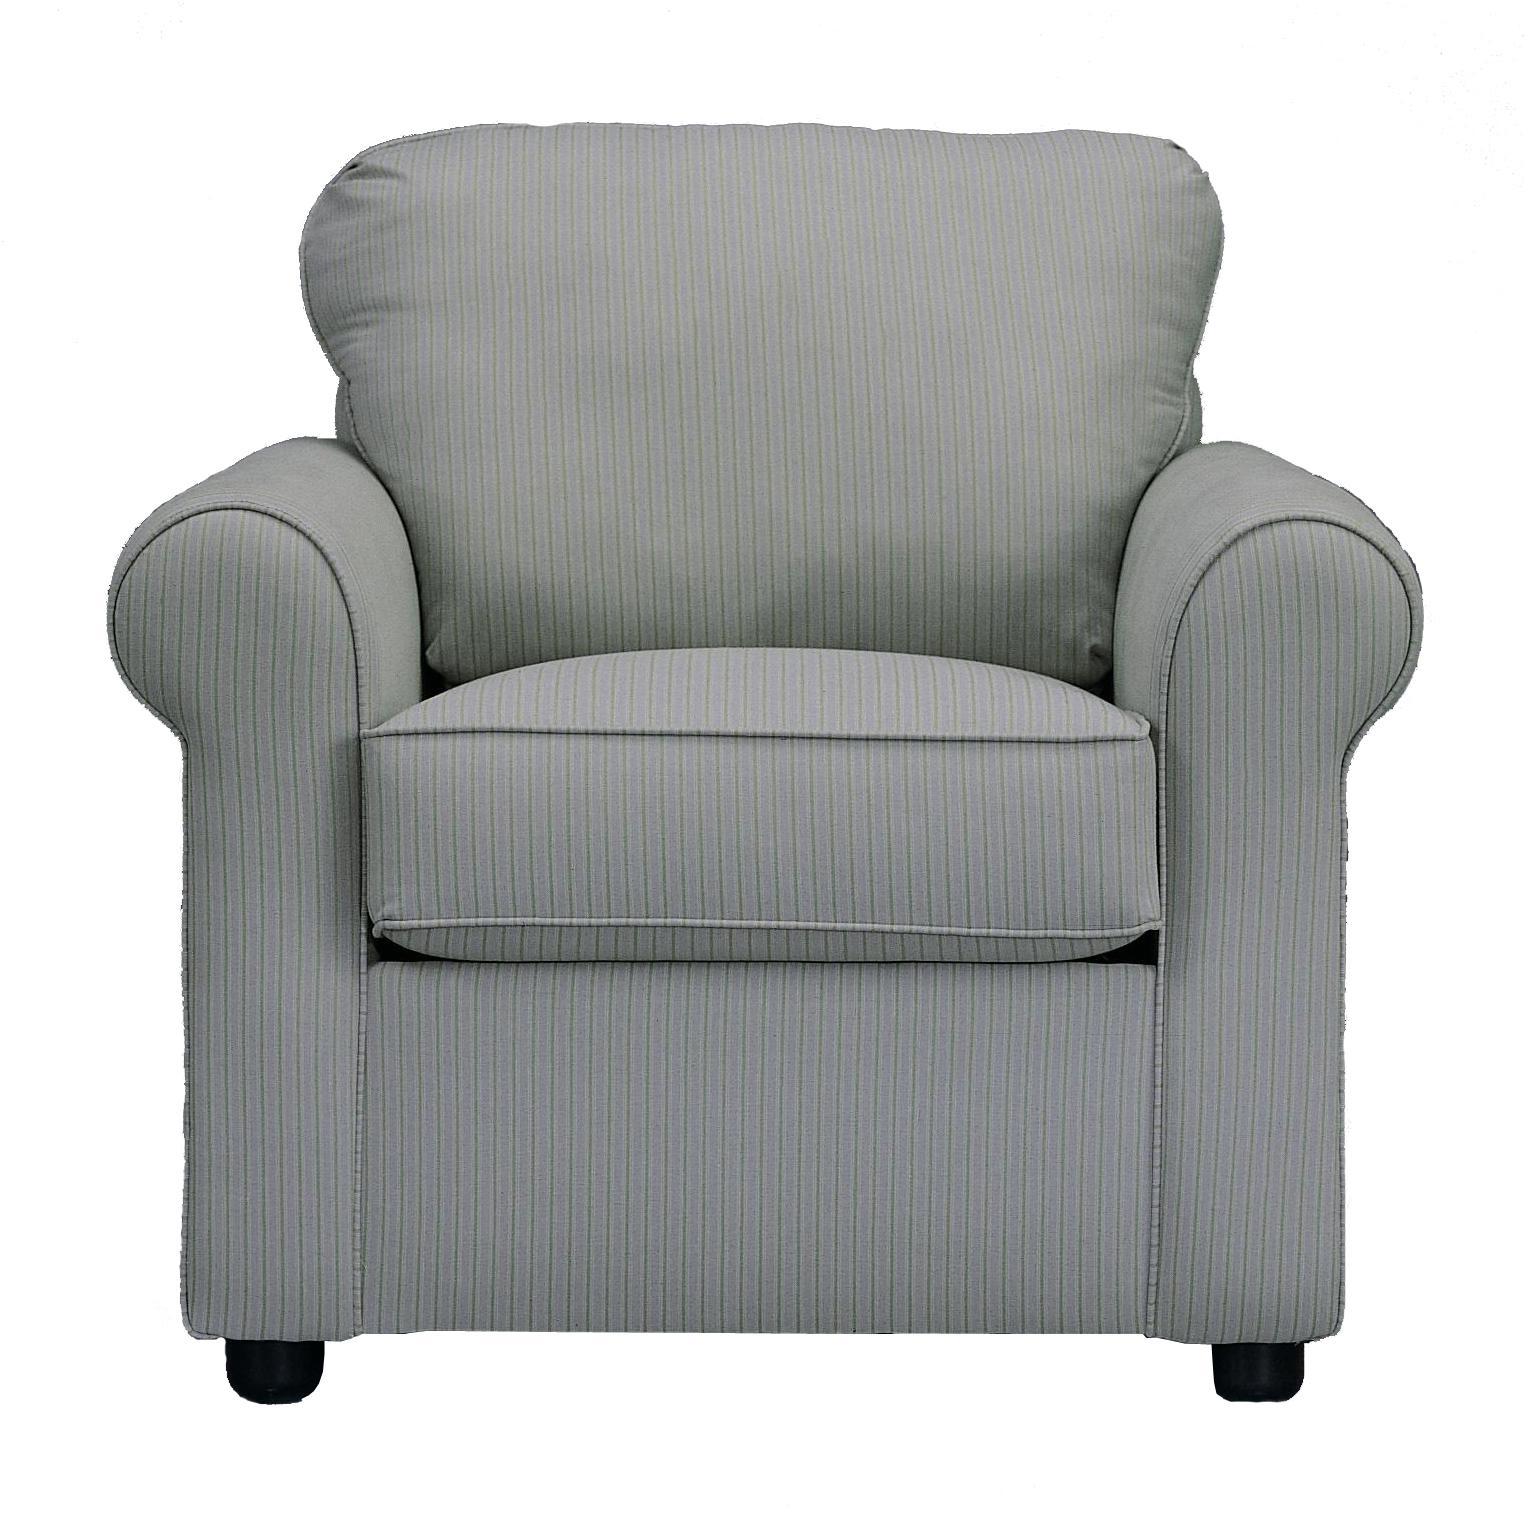 Brighton Chair by Klaussner at Lapeer Furniture & Mattress Center